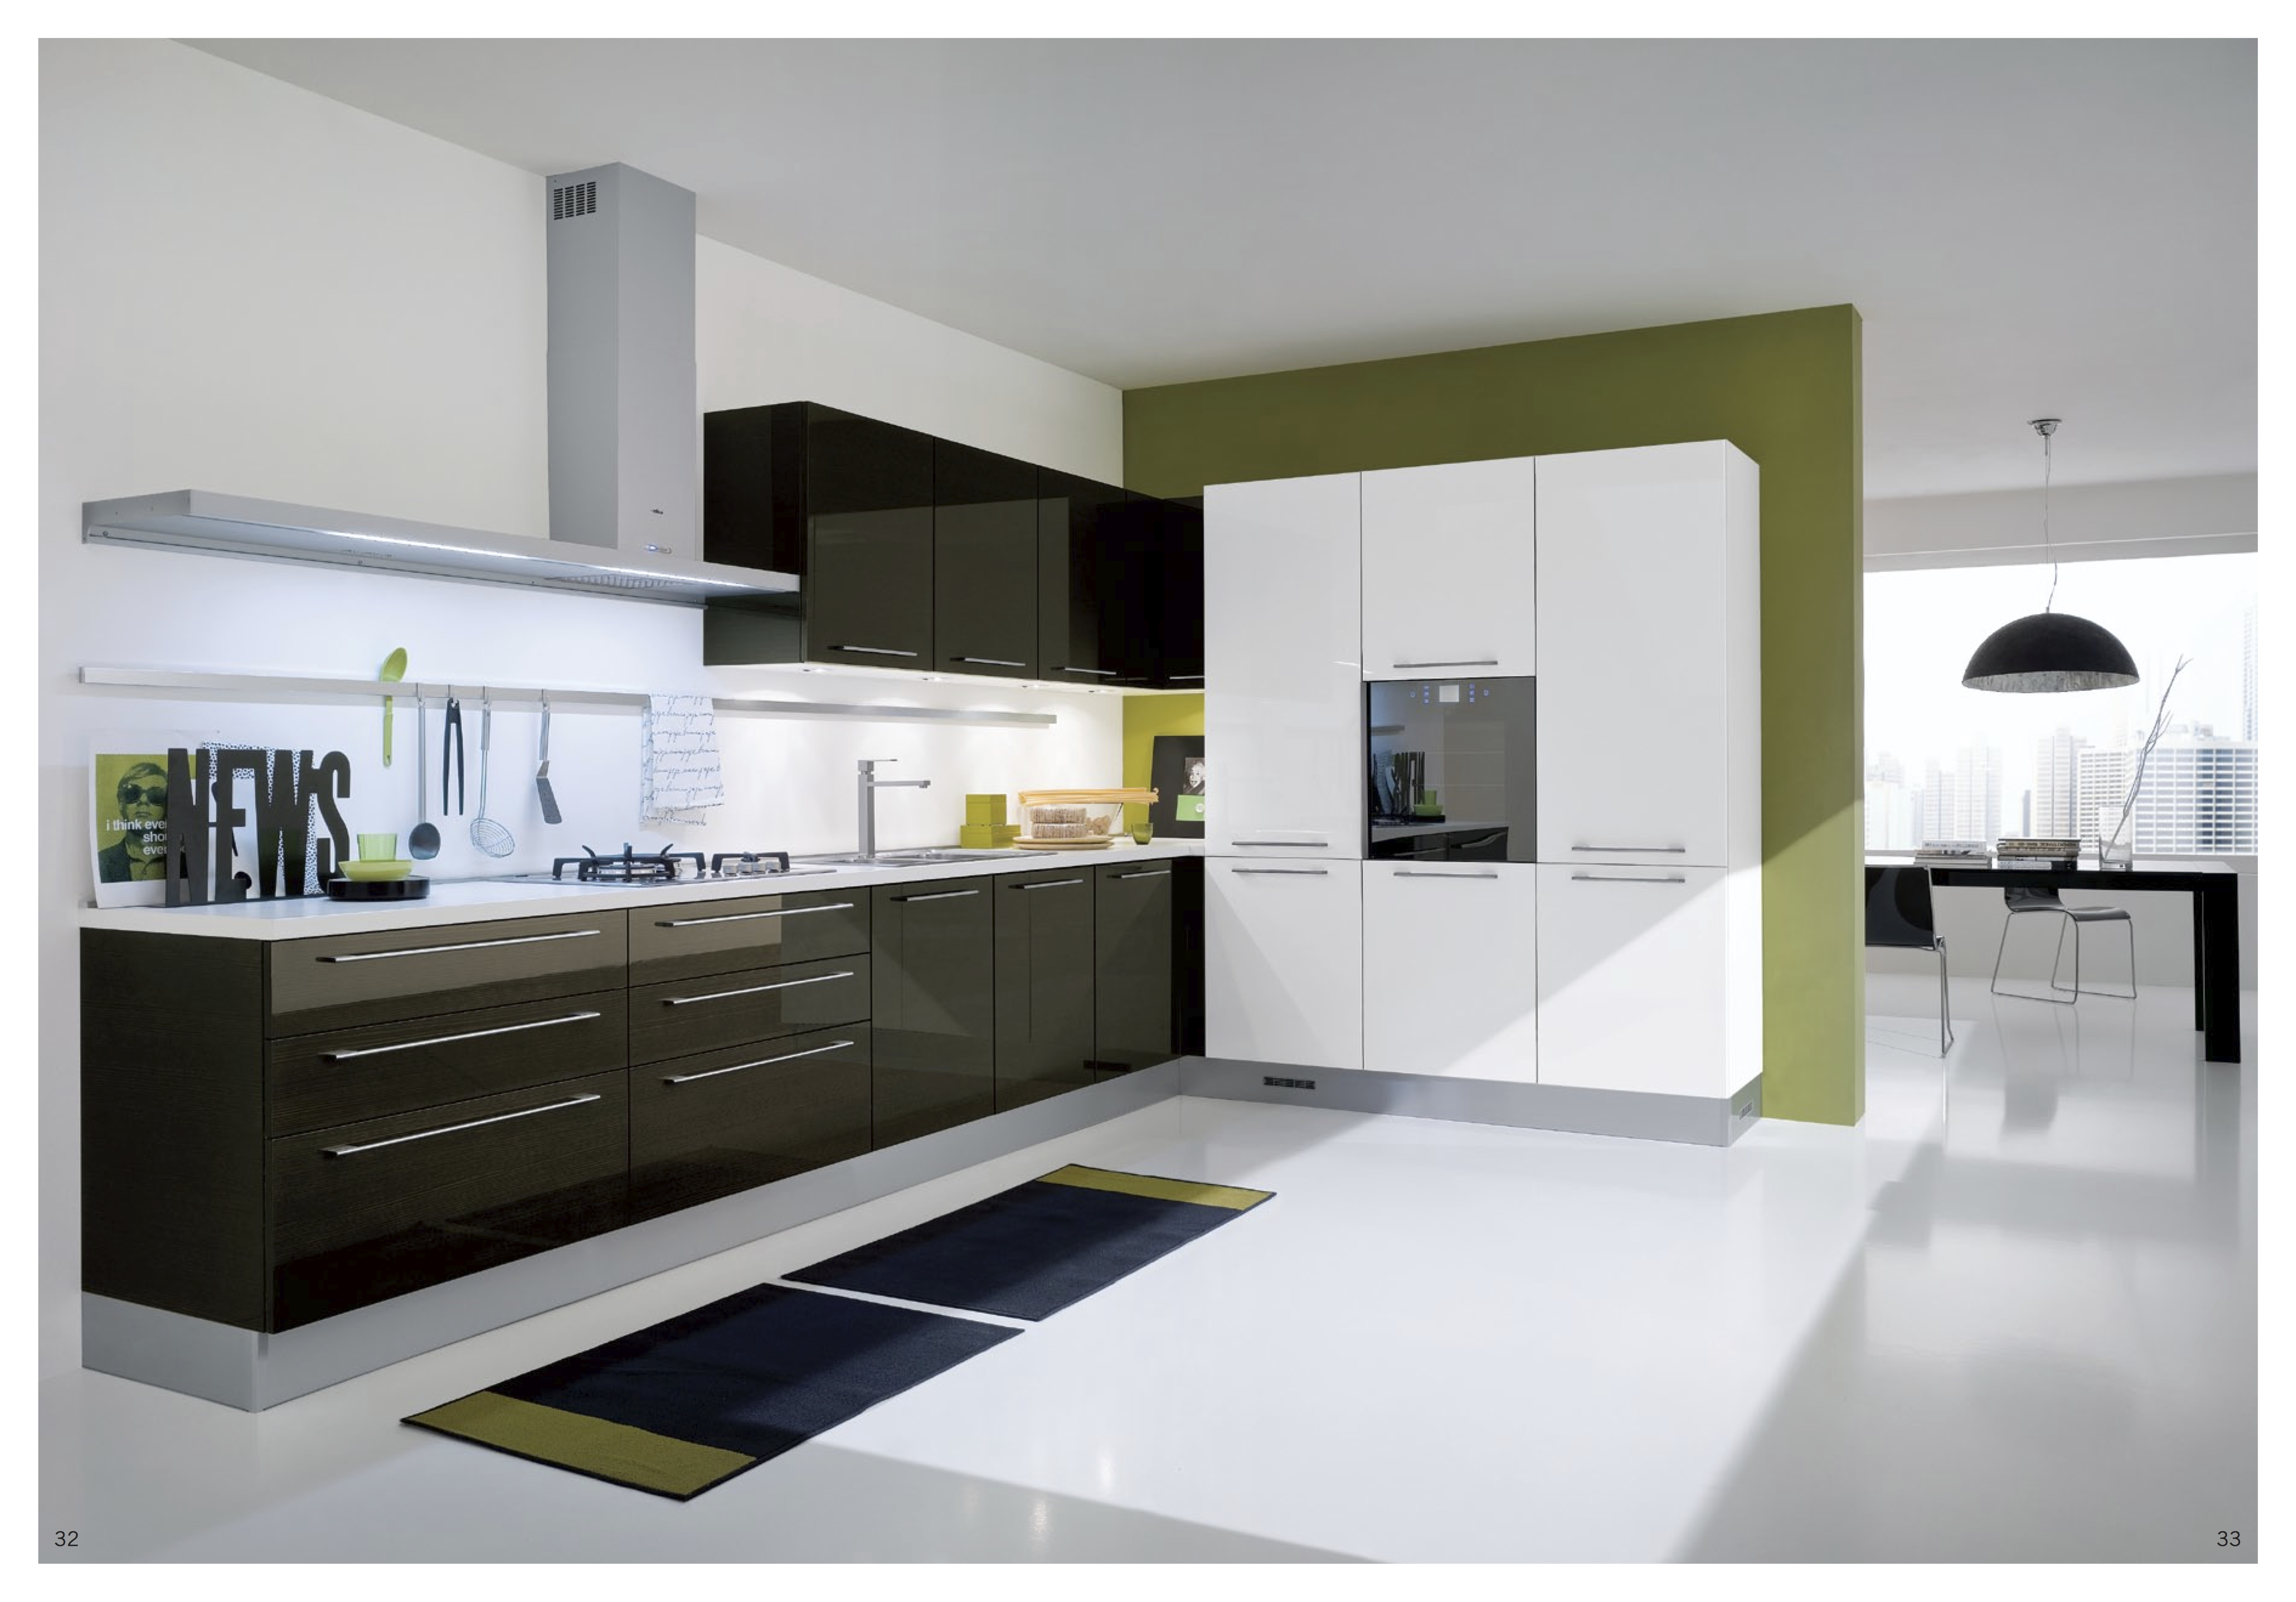 Great Modern Kitchen Ideas 5669 x 3956 · 5490 kB · jpeg